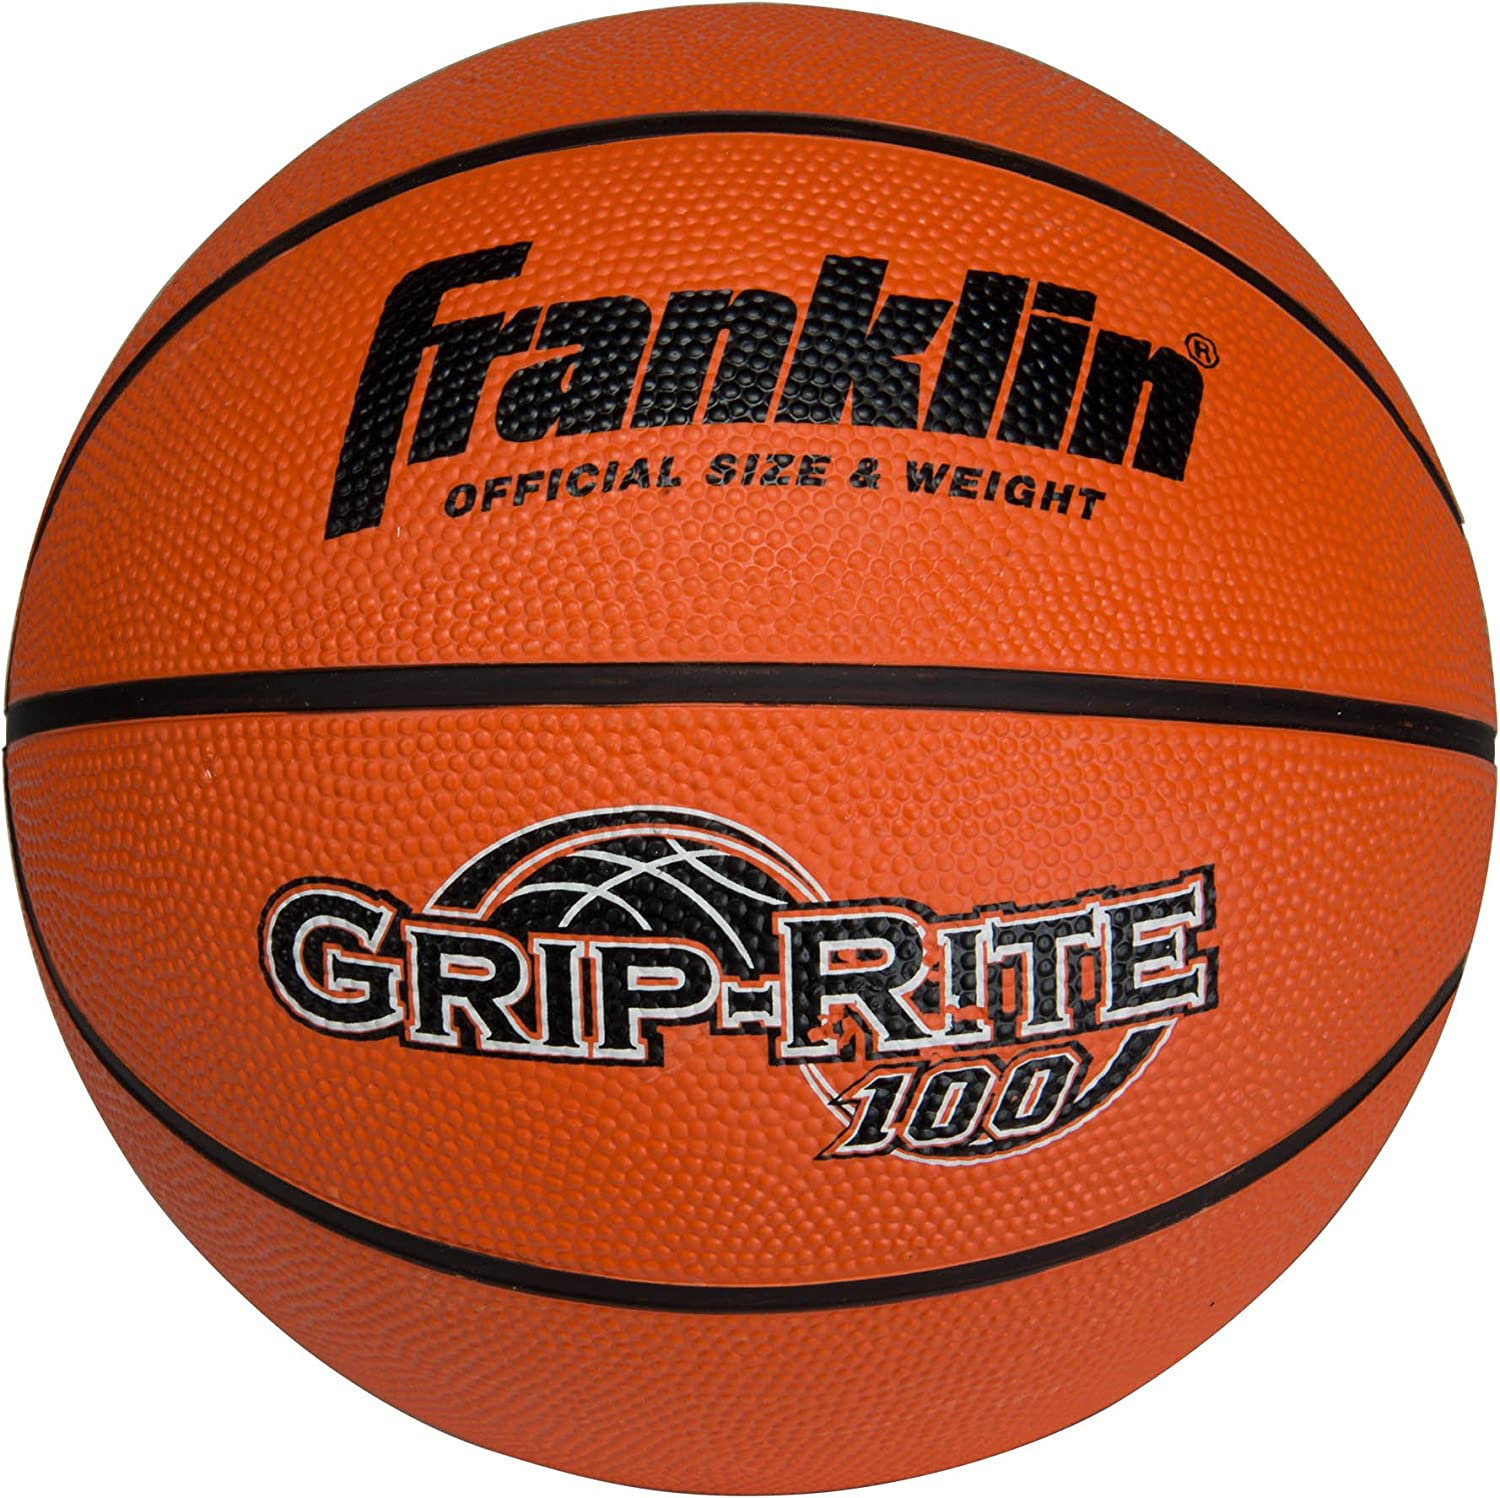 Franklin Sports Grip-Rite 100 Rubber Basketball (Size 7) : Sports & Outdoors